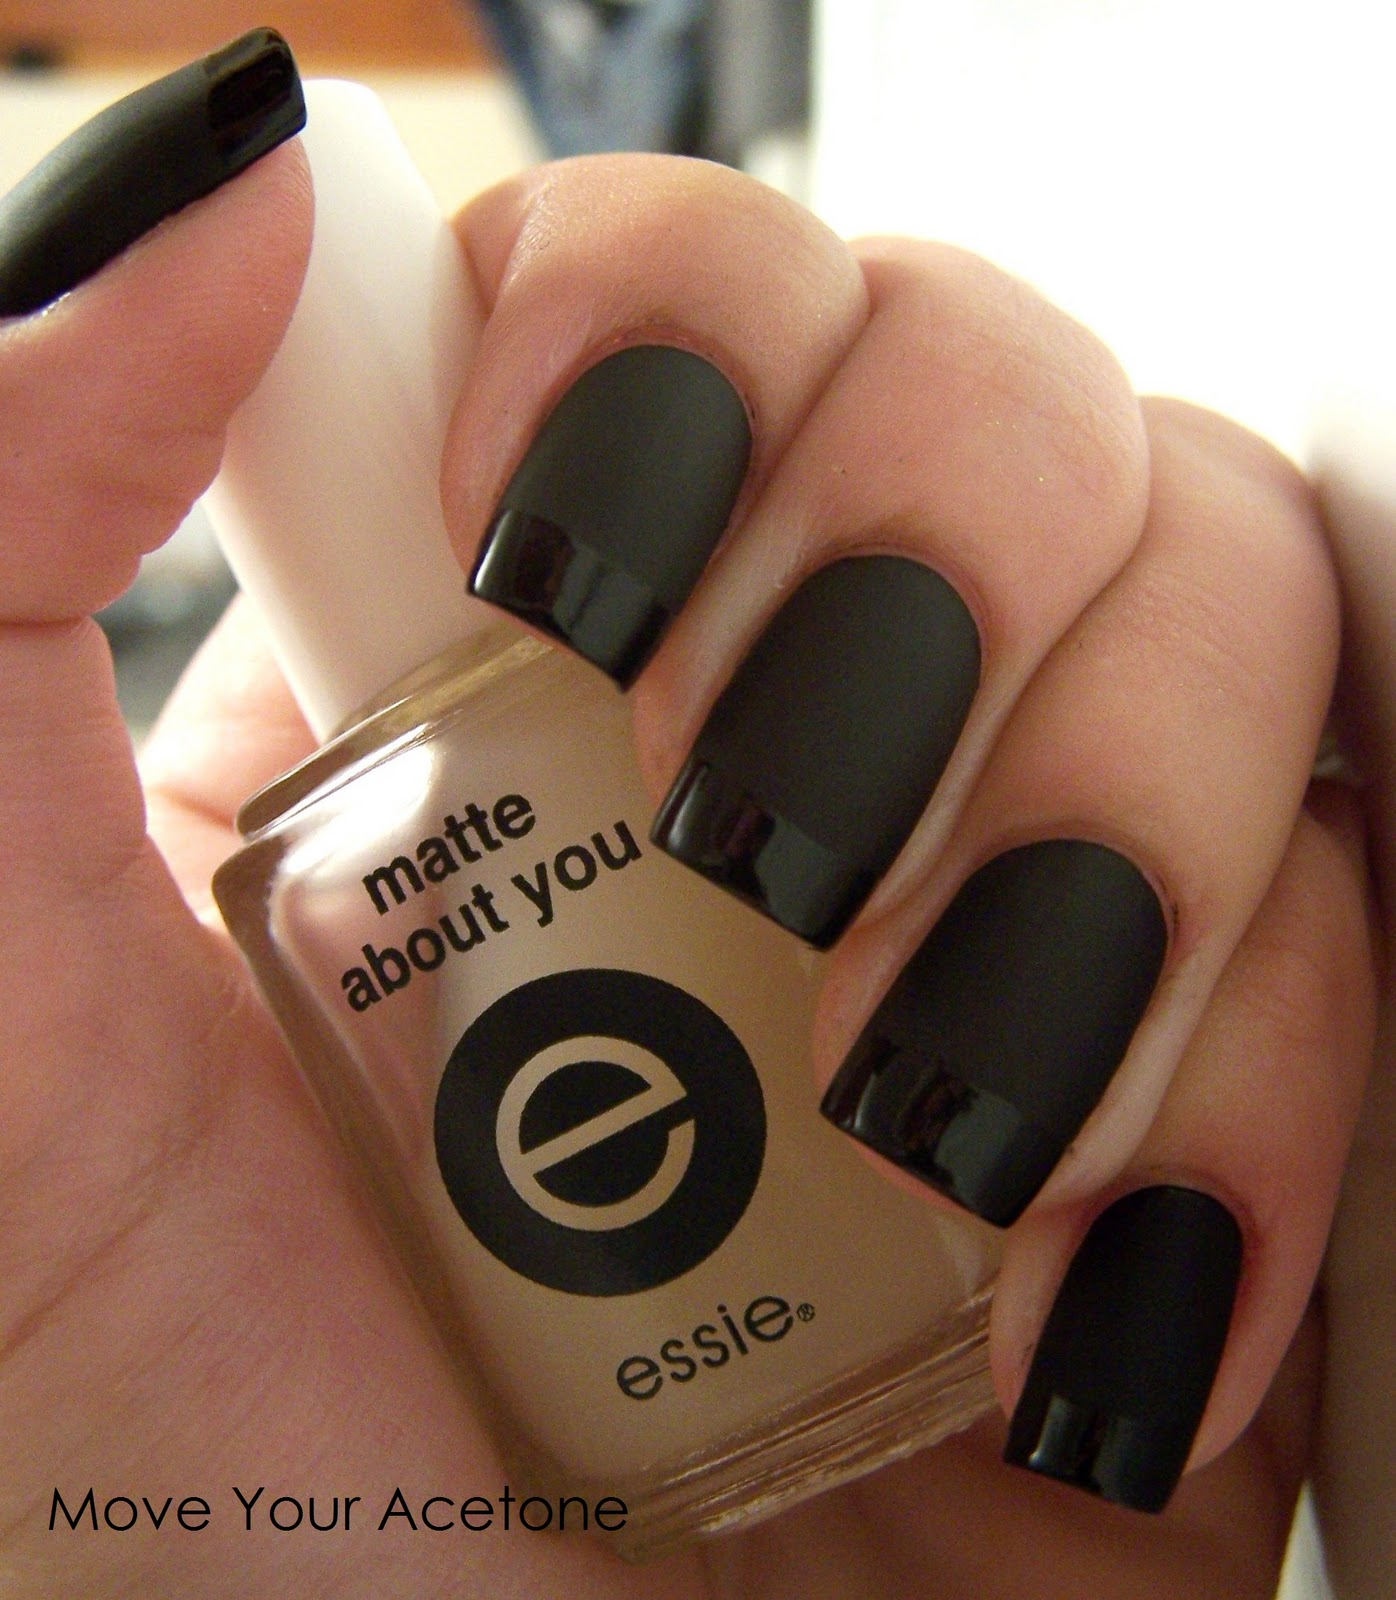 Move Your Acetone: Matte with gloss tips